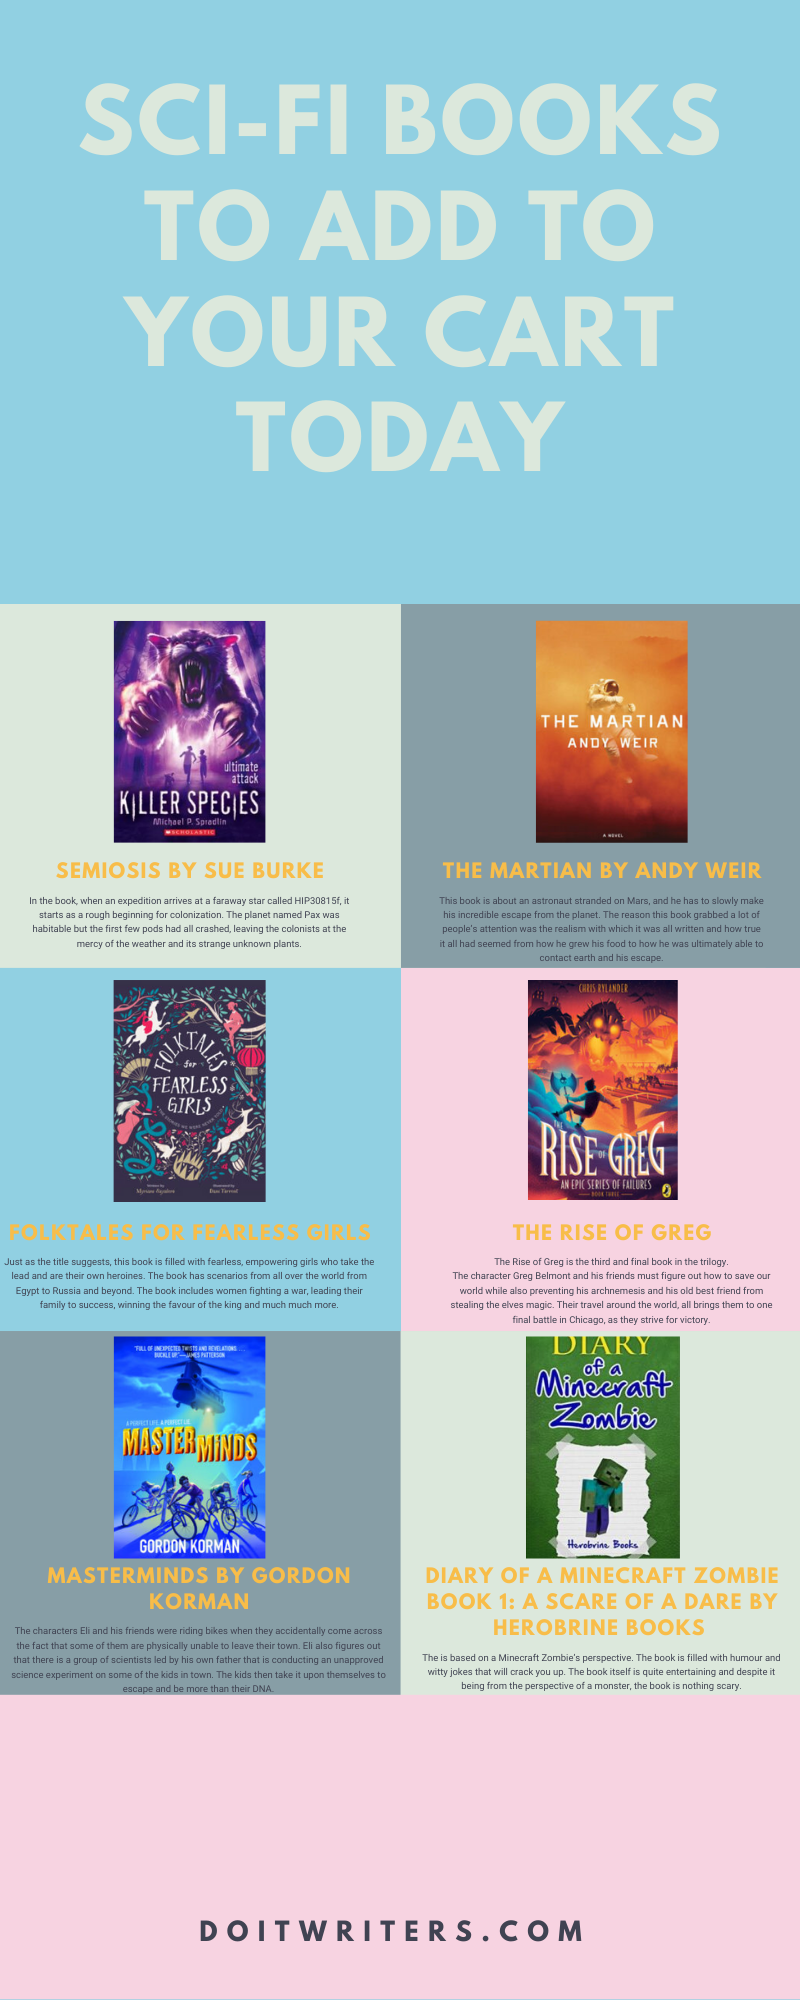 10 Sci-Fi Books To Add To Your Cart Today